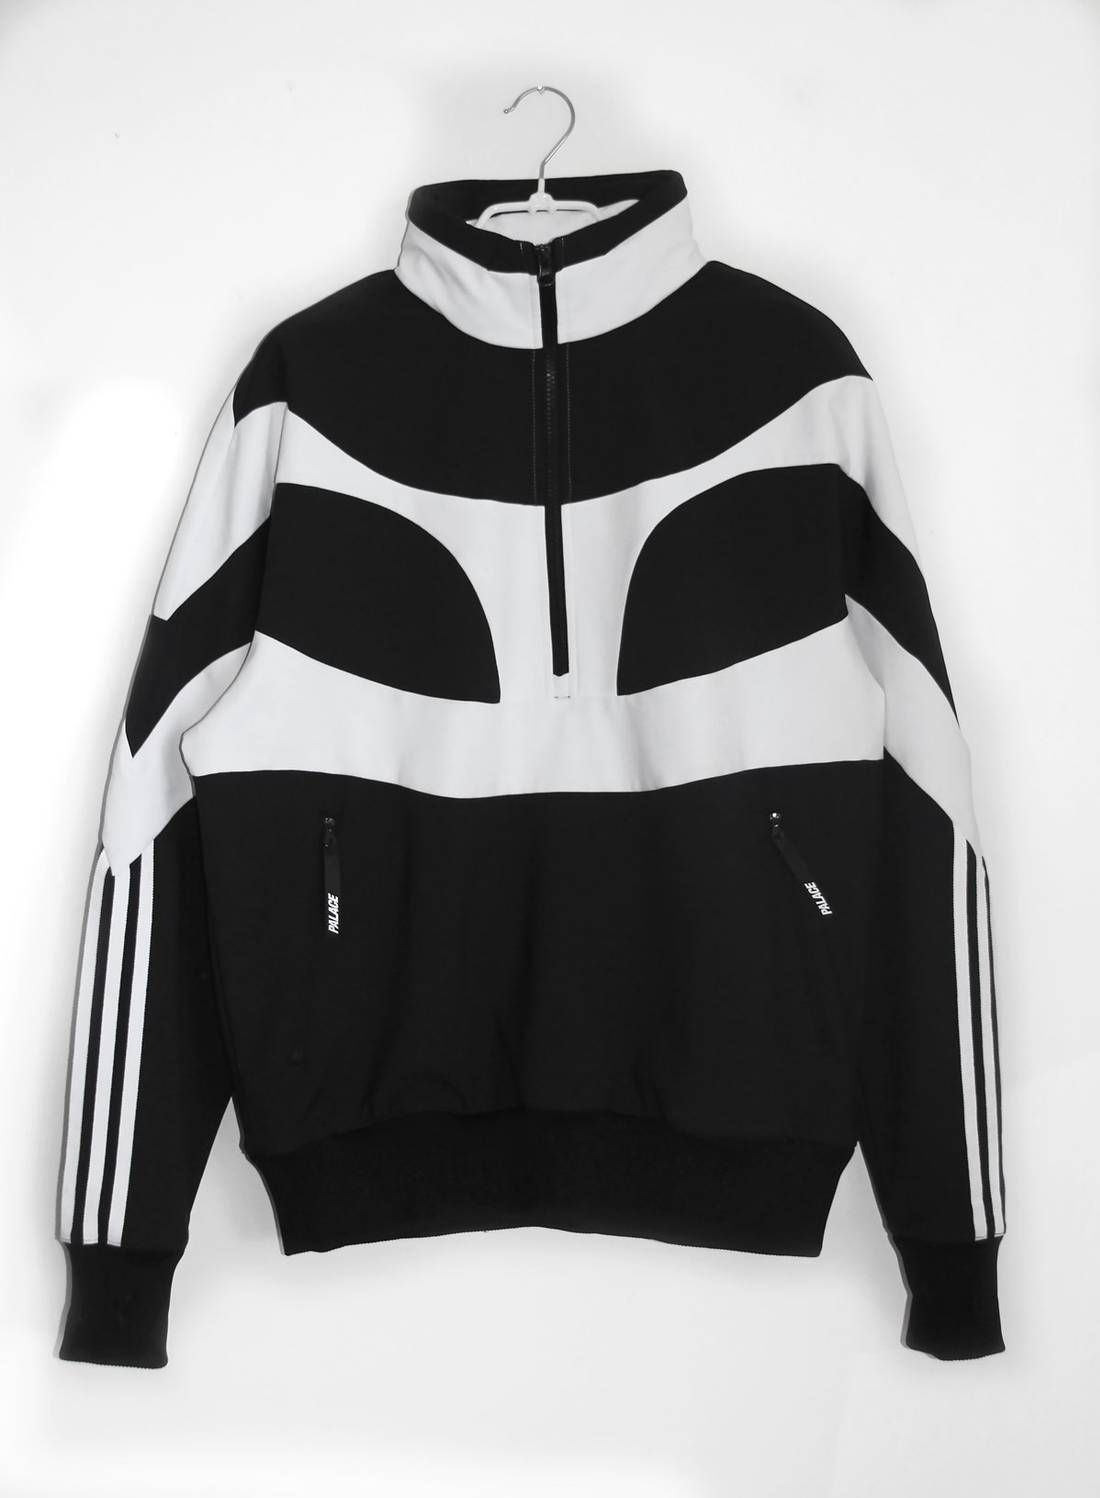 Pin By Dkimbrough On Clothes In 2021 Adidas Hoodie Hoodies Outwear Jackets [ 1498 x 1100 Pixel ]